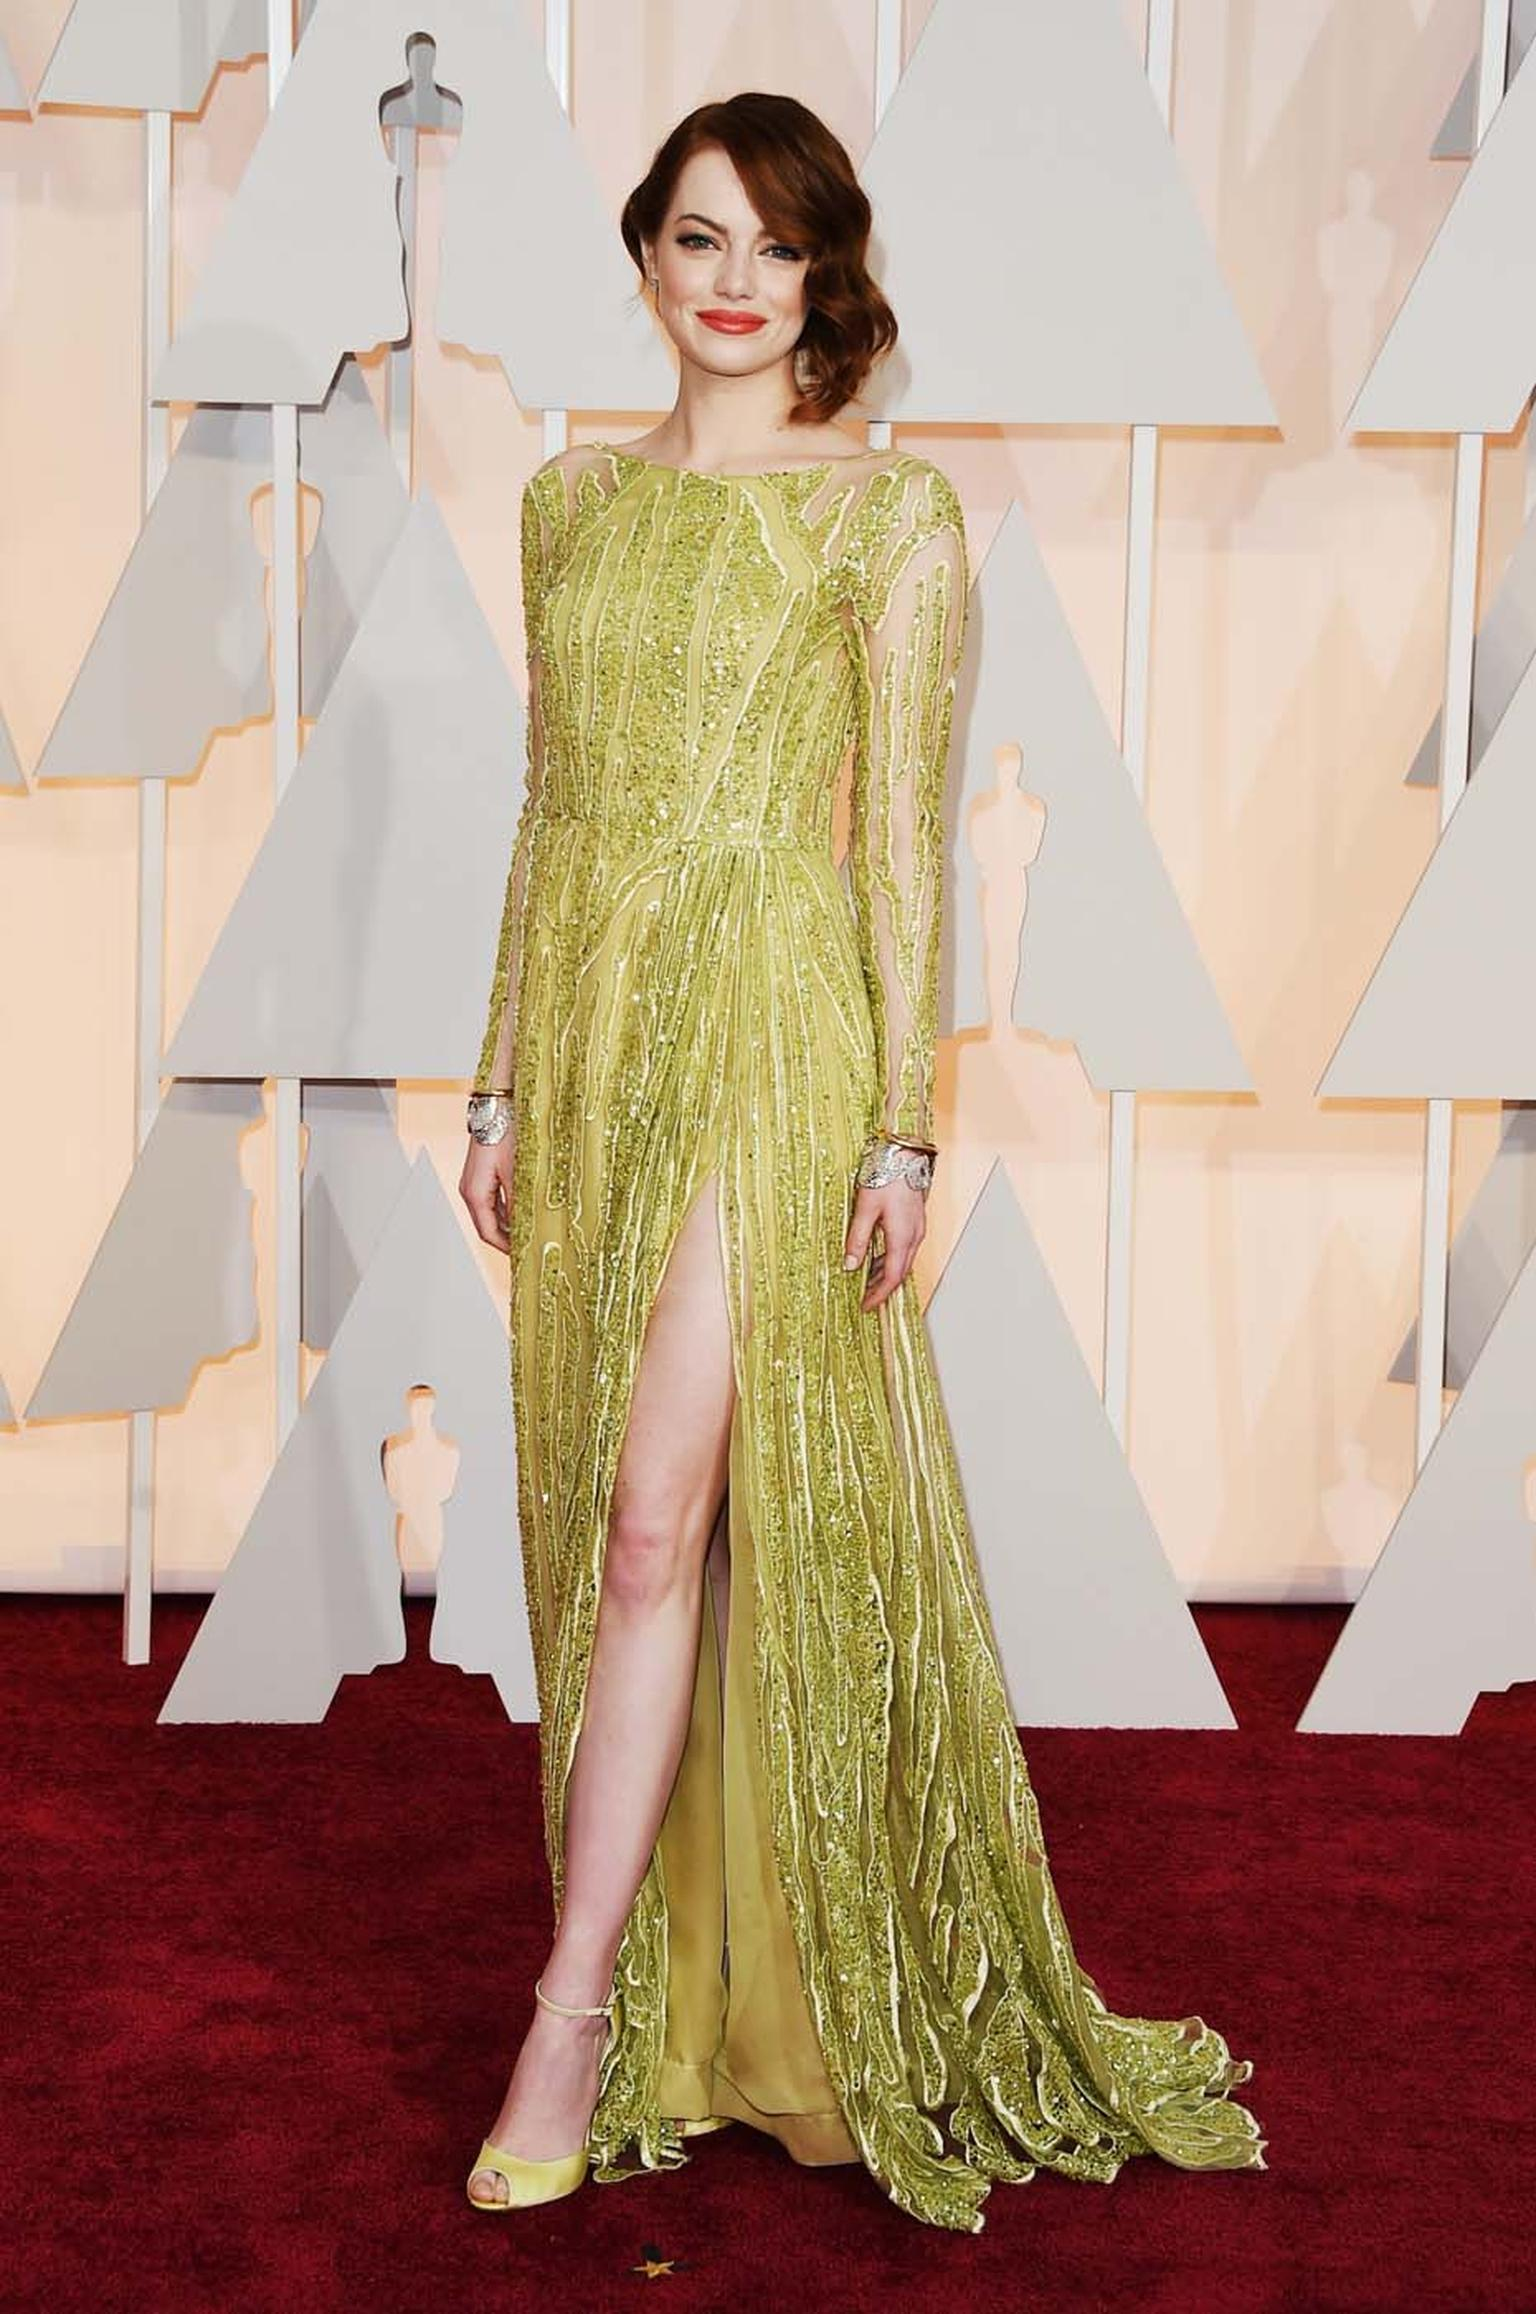 Best Actress Oscar nominee, Emma Stone, brought cool to the carpet with her red carpet jewelry. She matched her yellow-tone Ellie Saab gown with a pair of 1940s-inspired sculptural cuffs from Tiffany's Blue Book Collection.